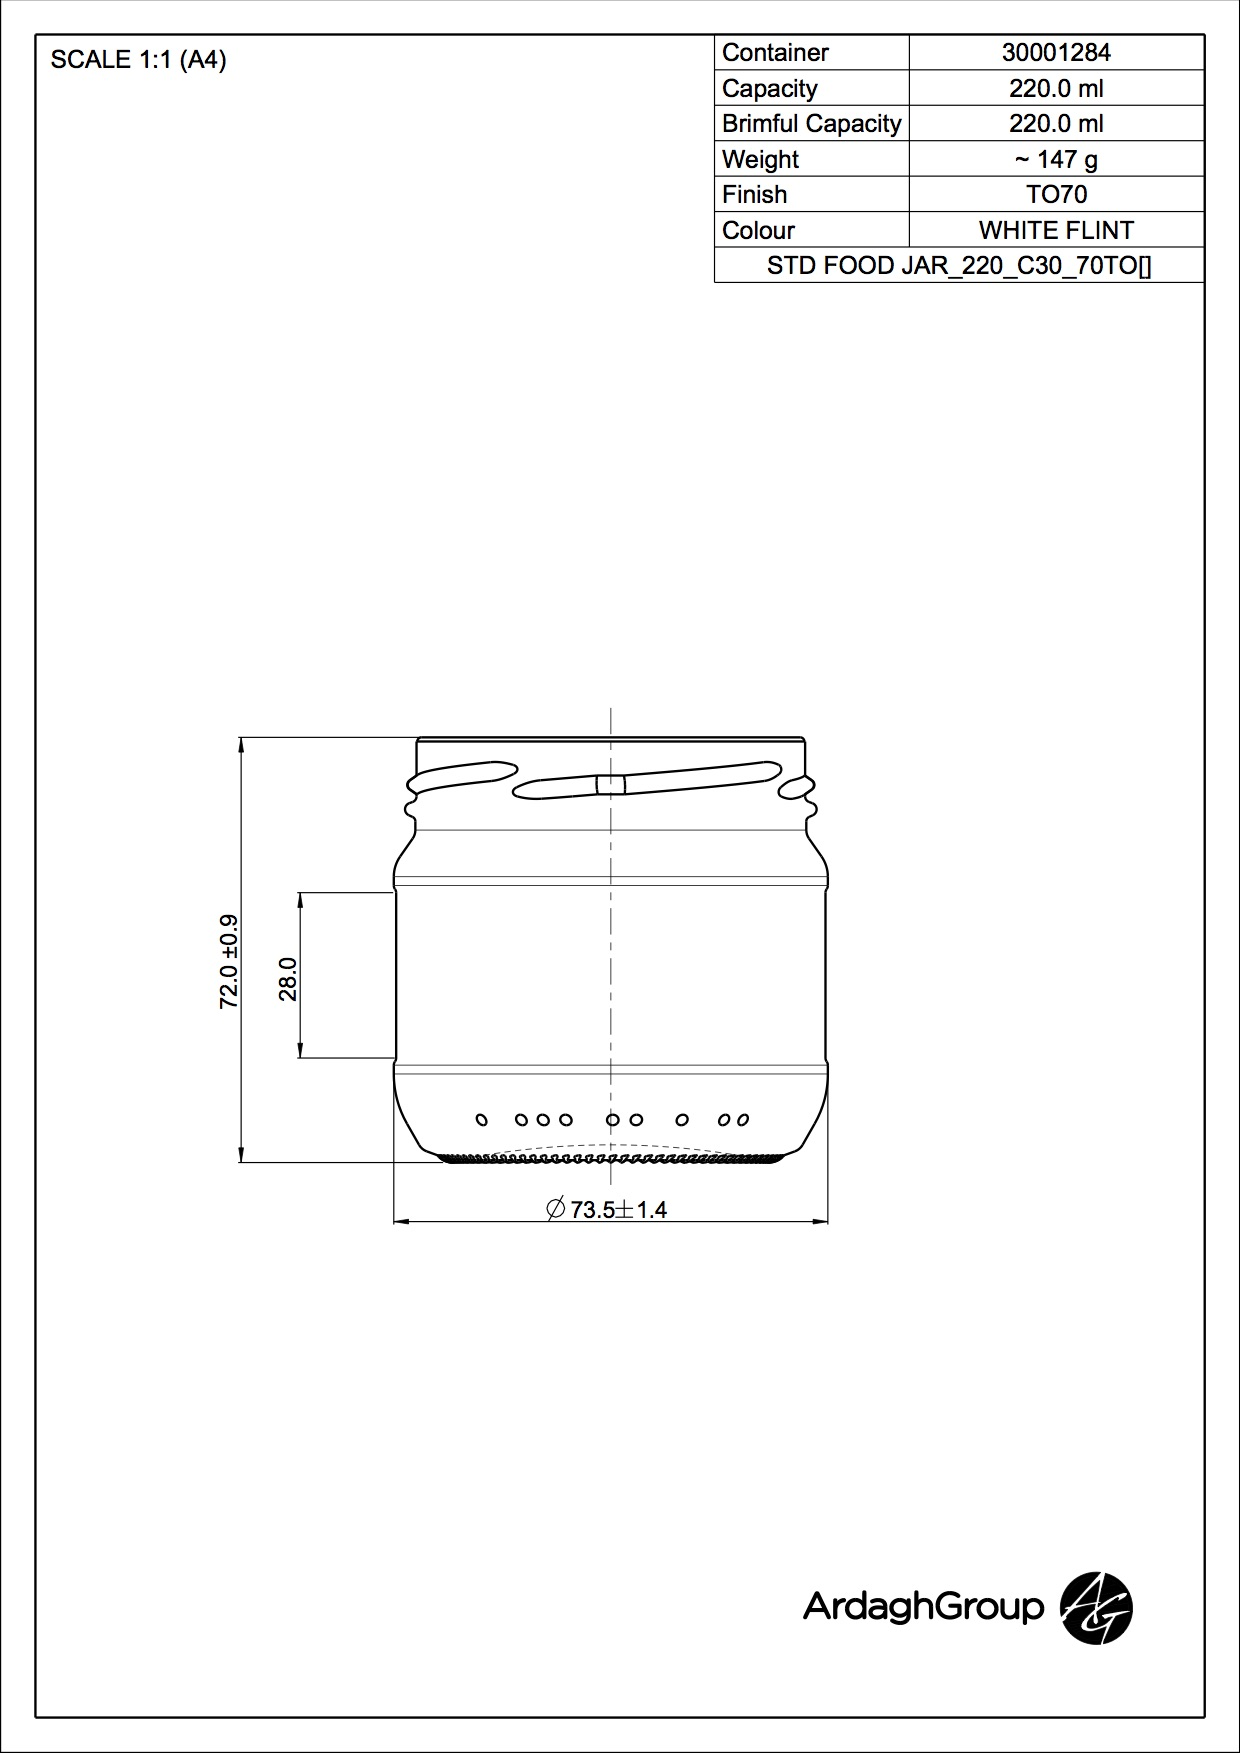 STD FOOD JAR 220 C30 70TO